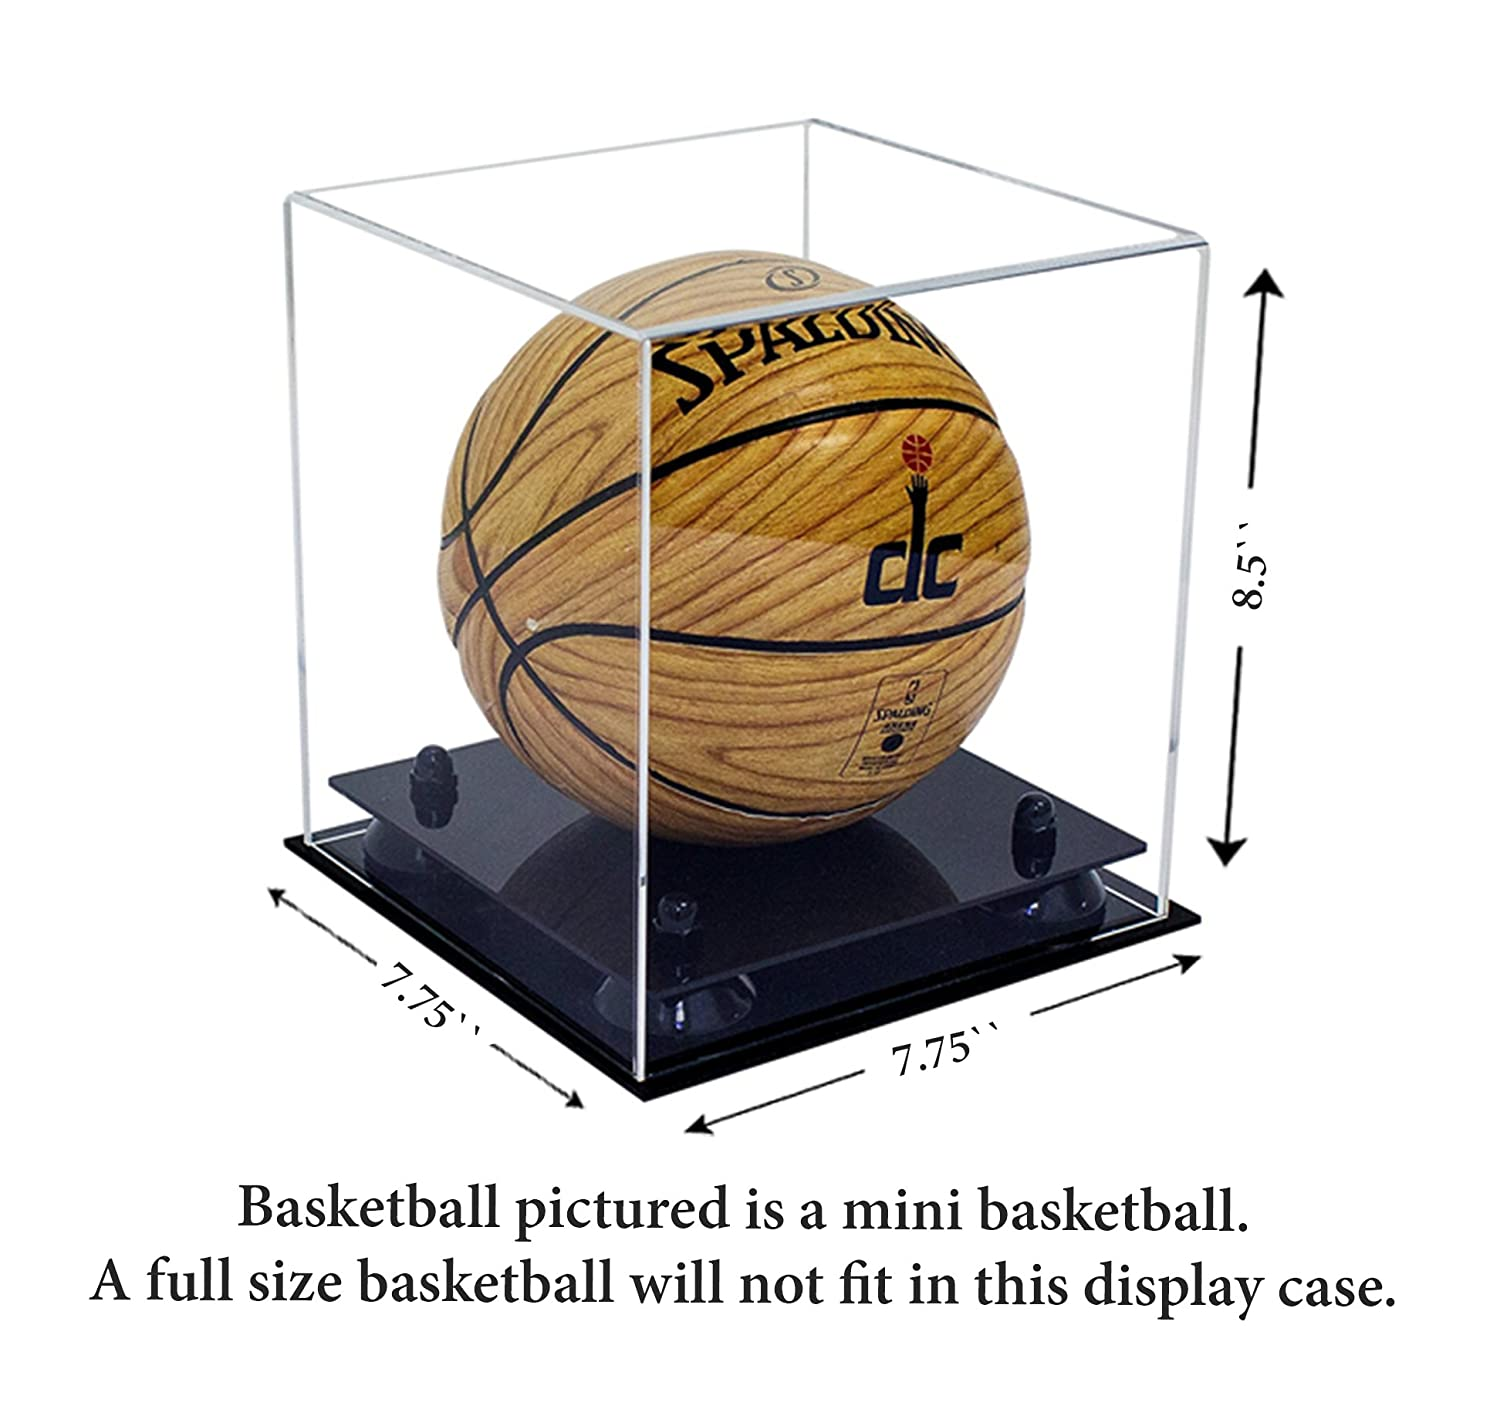 ce33352f8d7 Amazon.com   Deluxe Clear Acrylic Mini - Miniature (not Full Size)  Basketball Display Case with Black Risers (A015-BR)   Sports   Outdoors